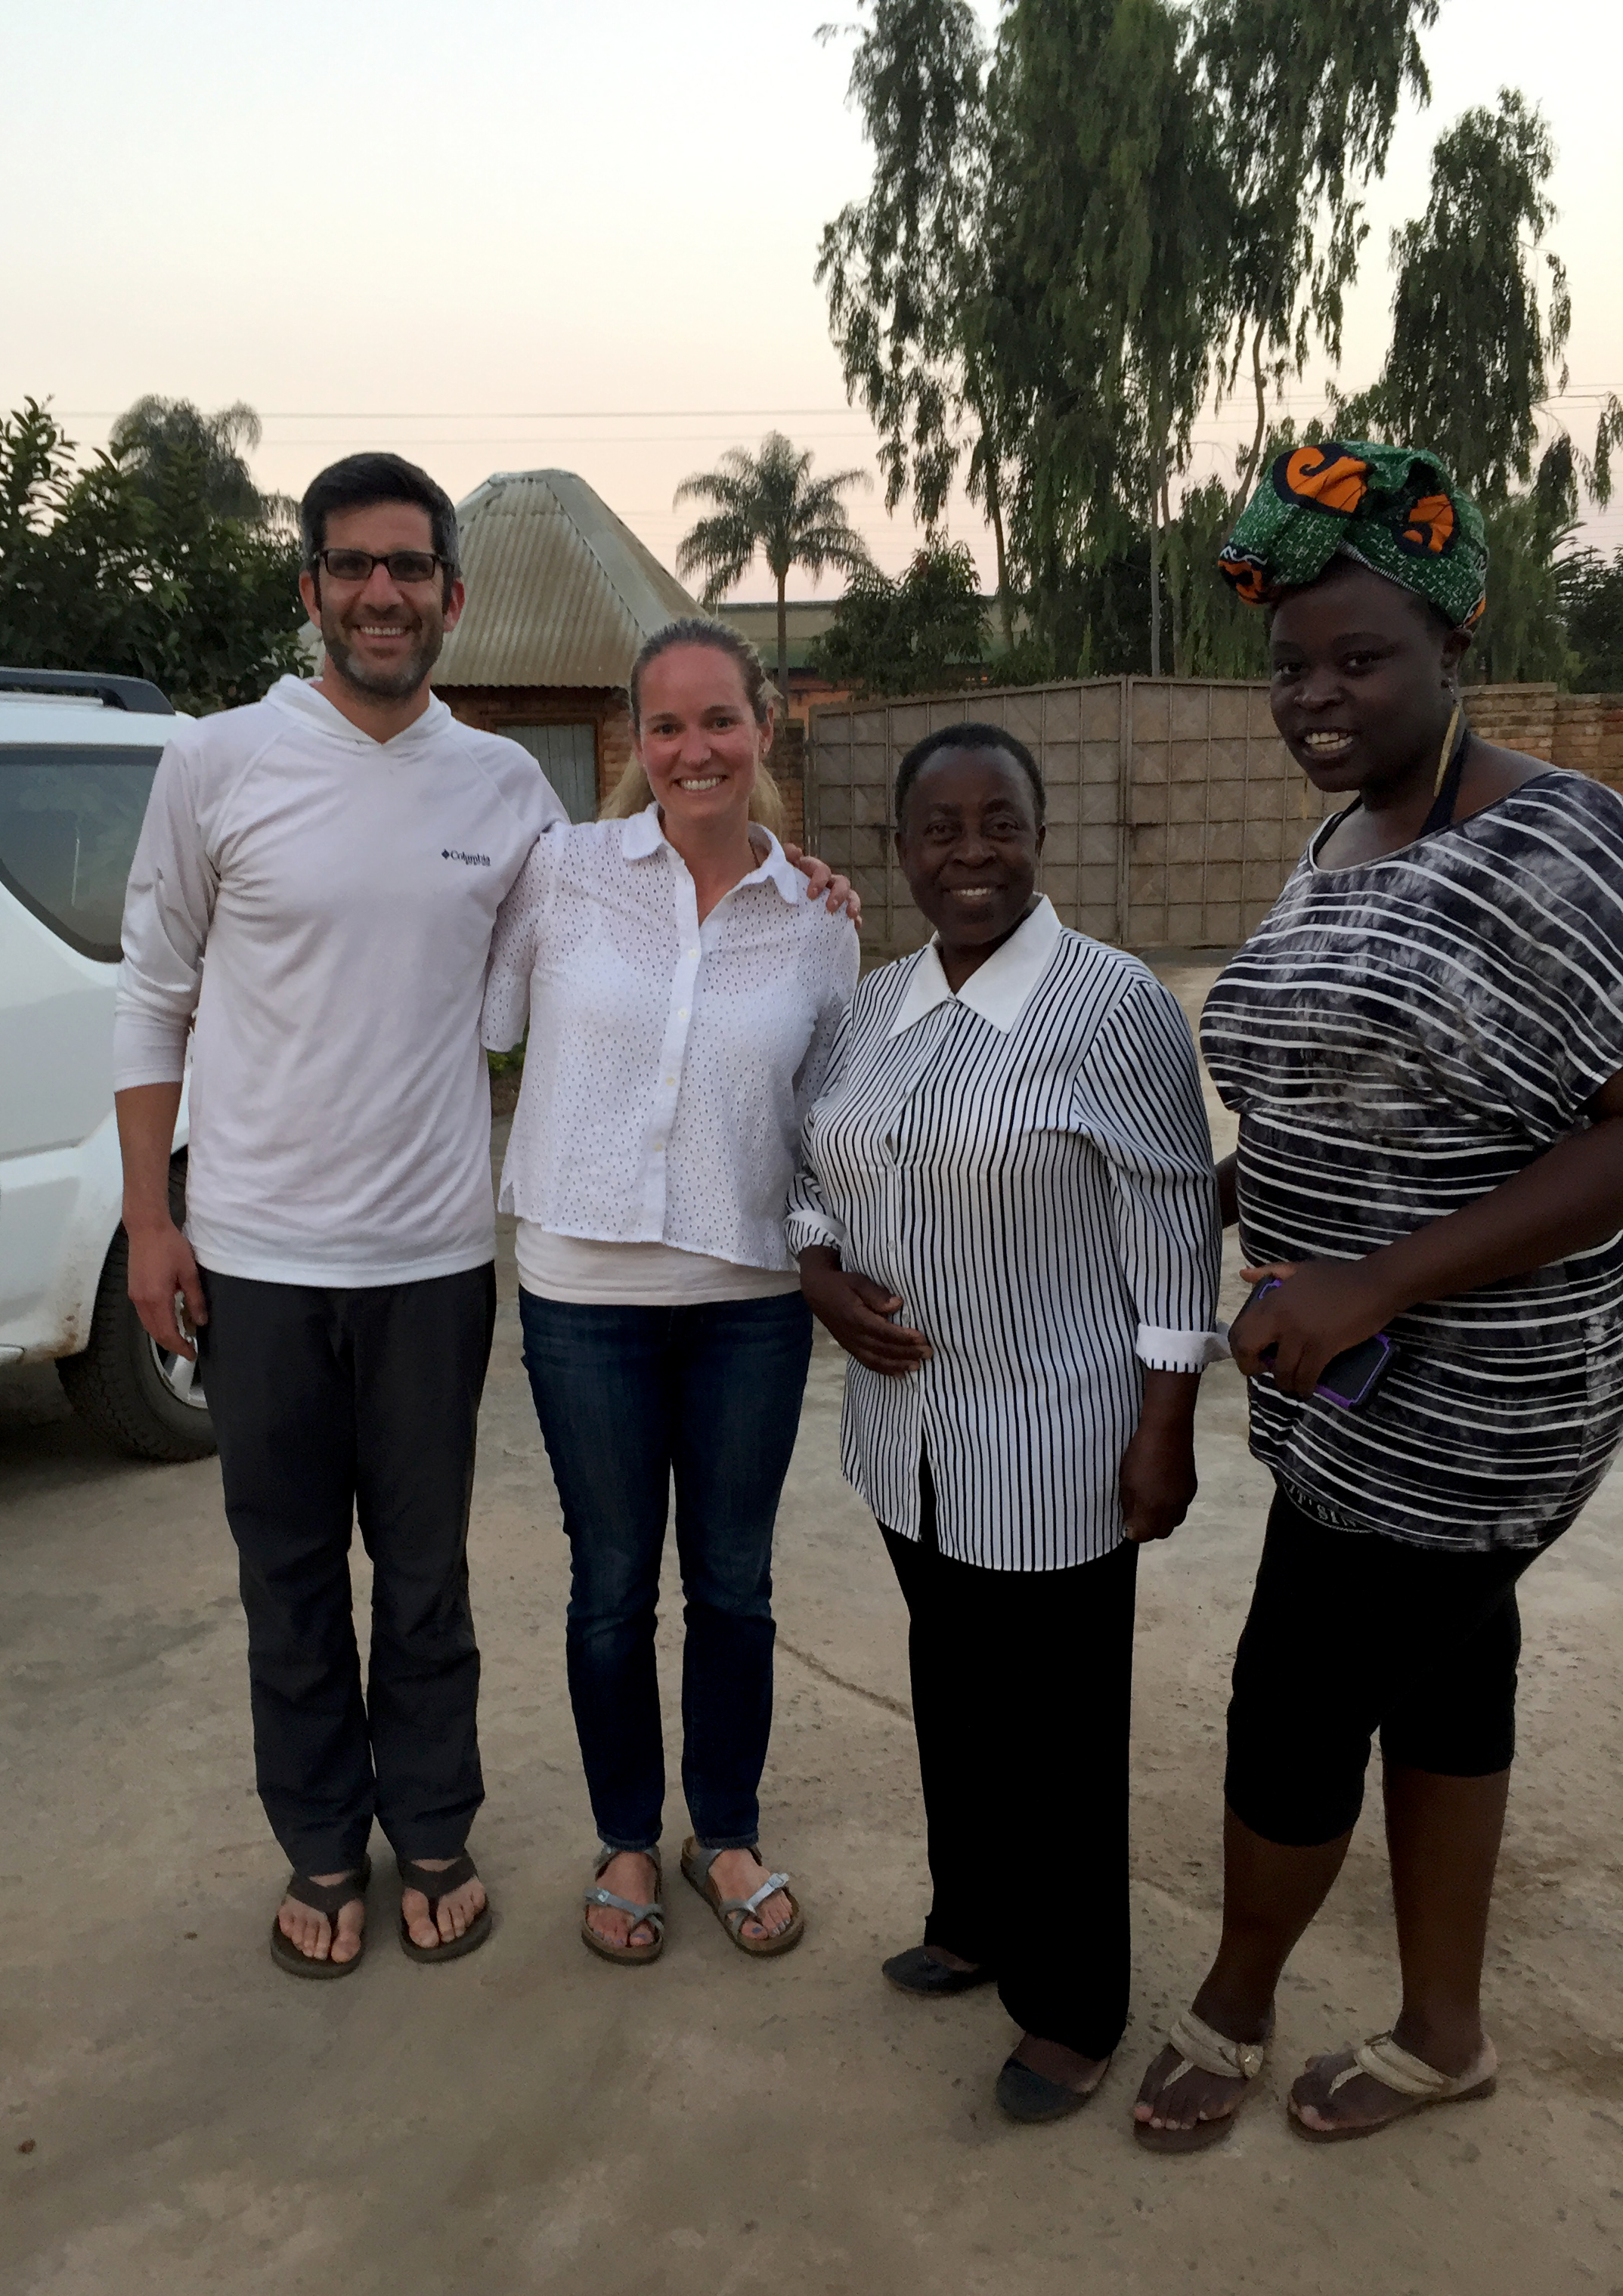 We were fortunate enough to have the chance to visit the family of our Denver friends, who are from Mzuzu.